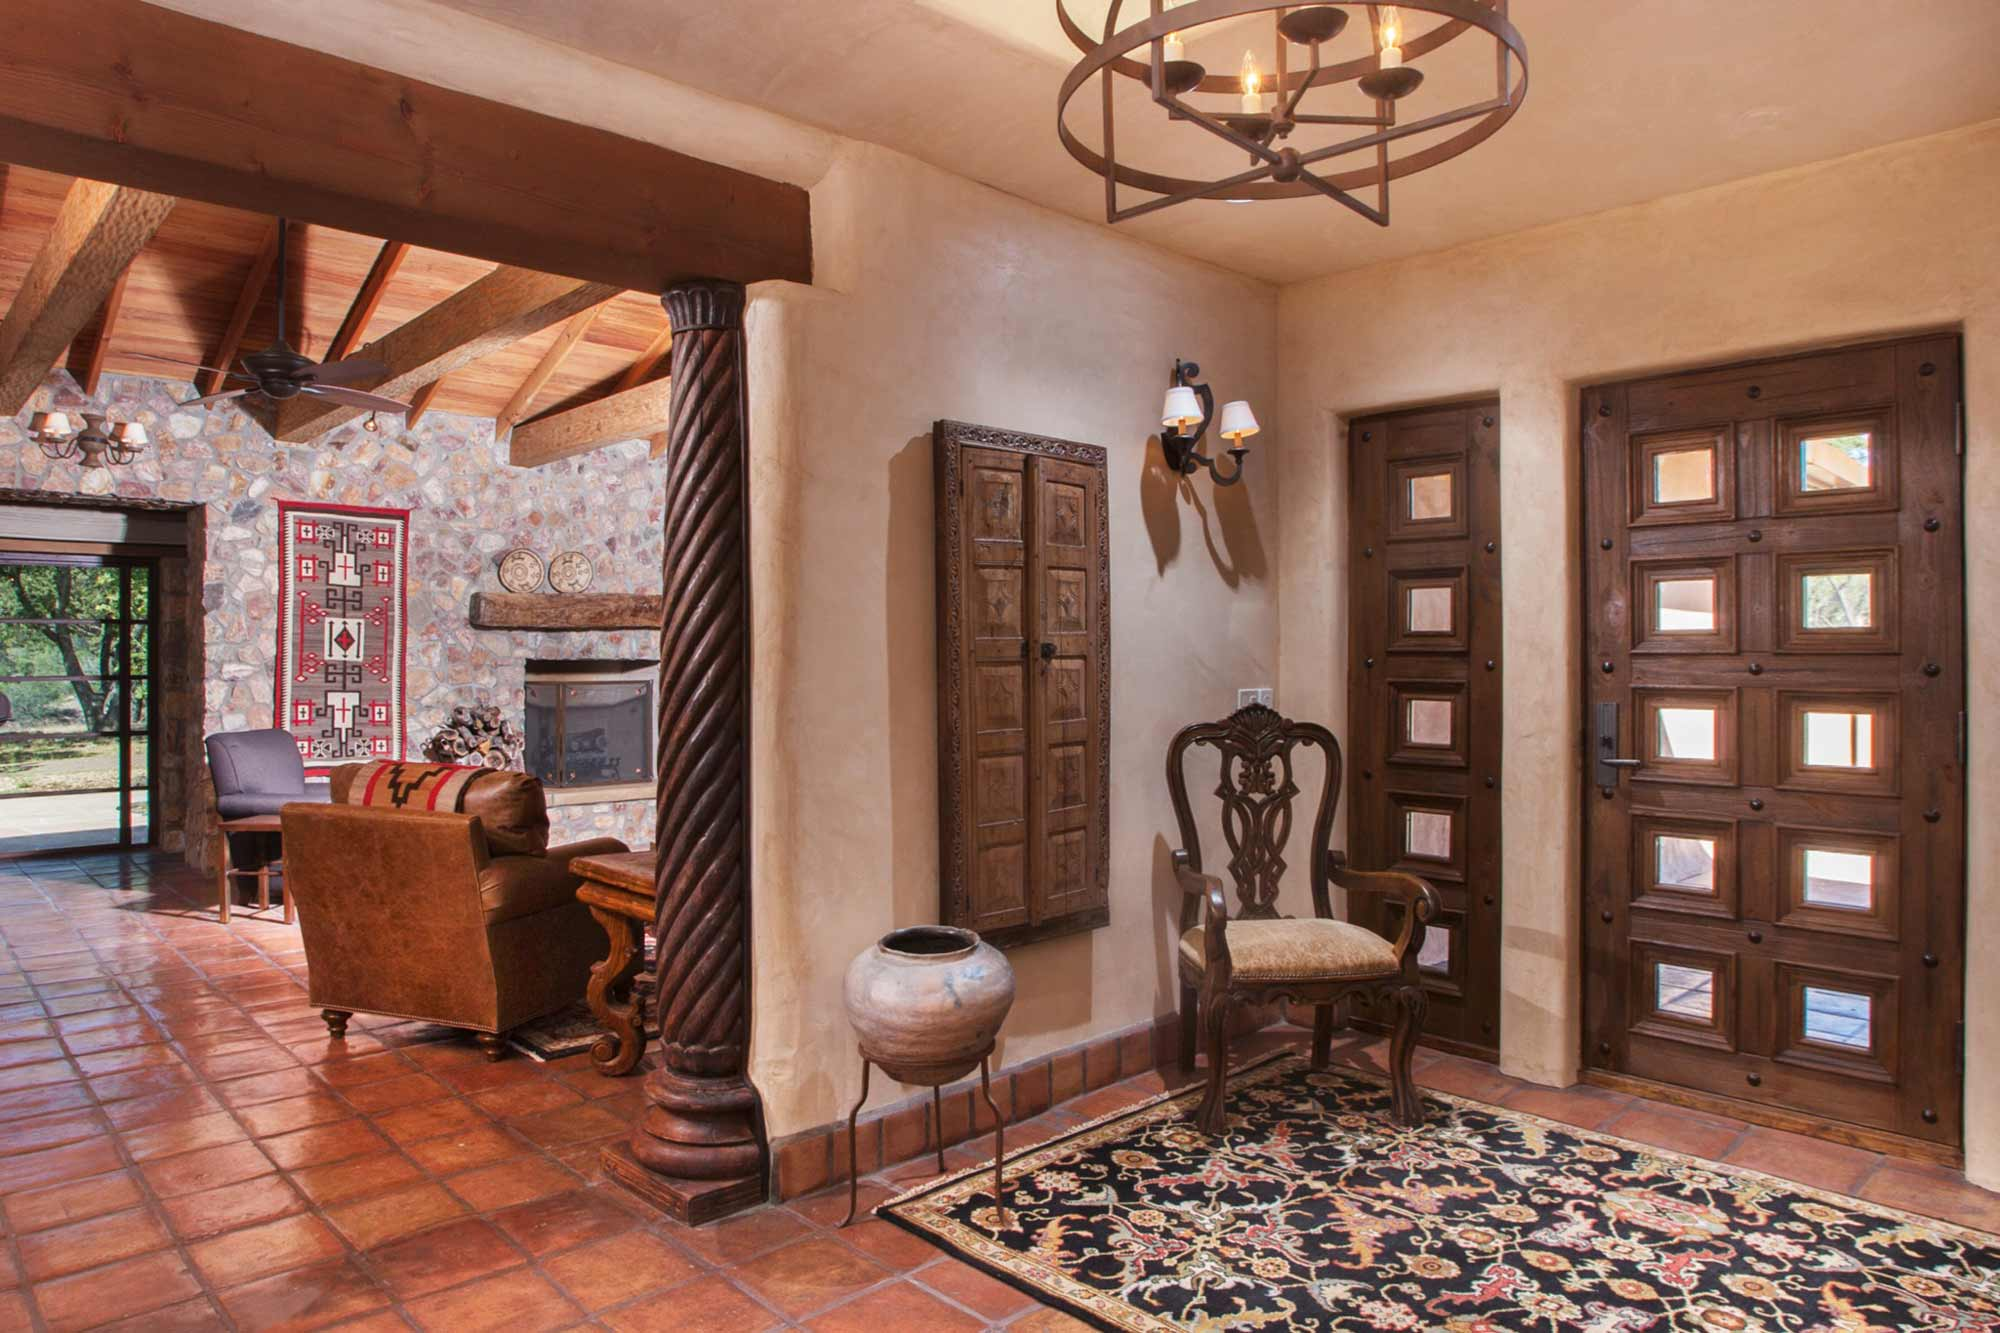 ranch-house-interior-sonoita-arizona.jpg